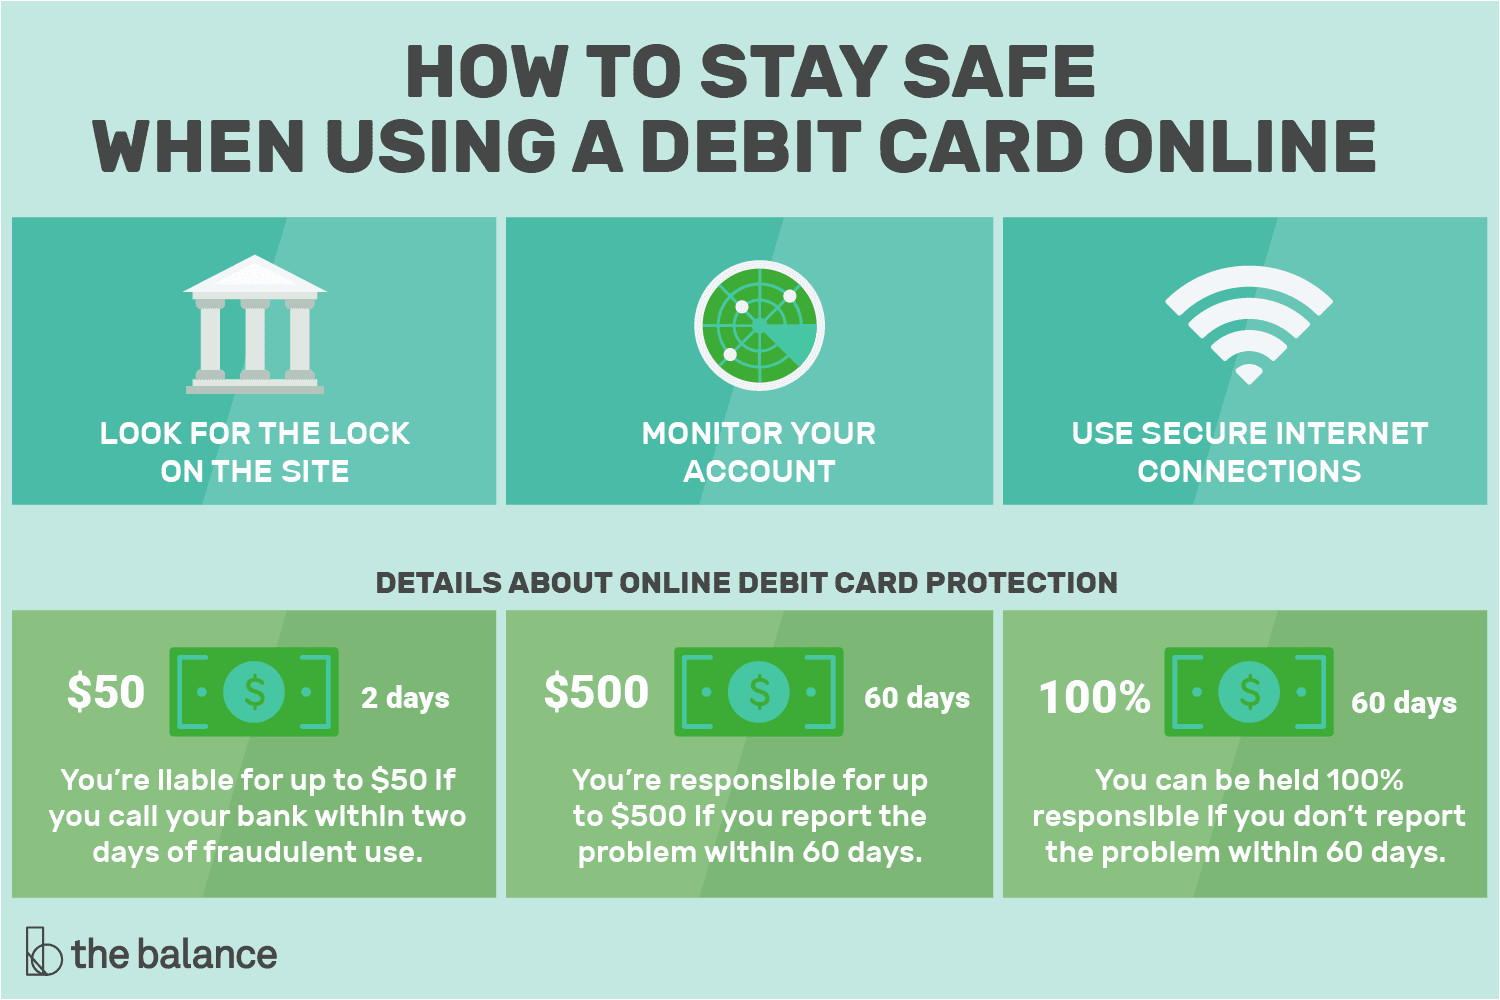 can i use a debit card online 315325 v6 5b6891cd46e0fb00253b6efe png